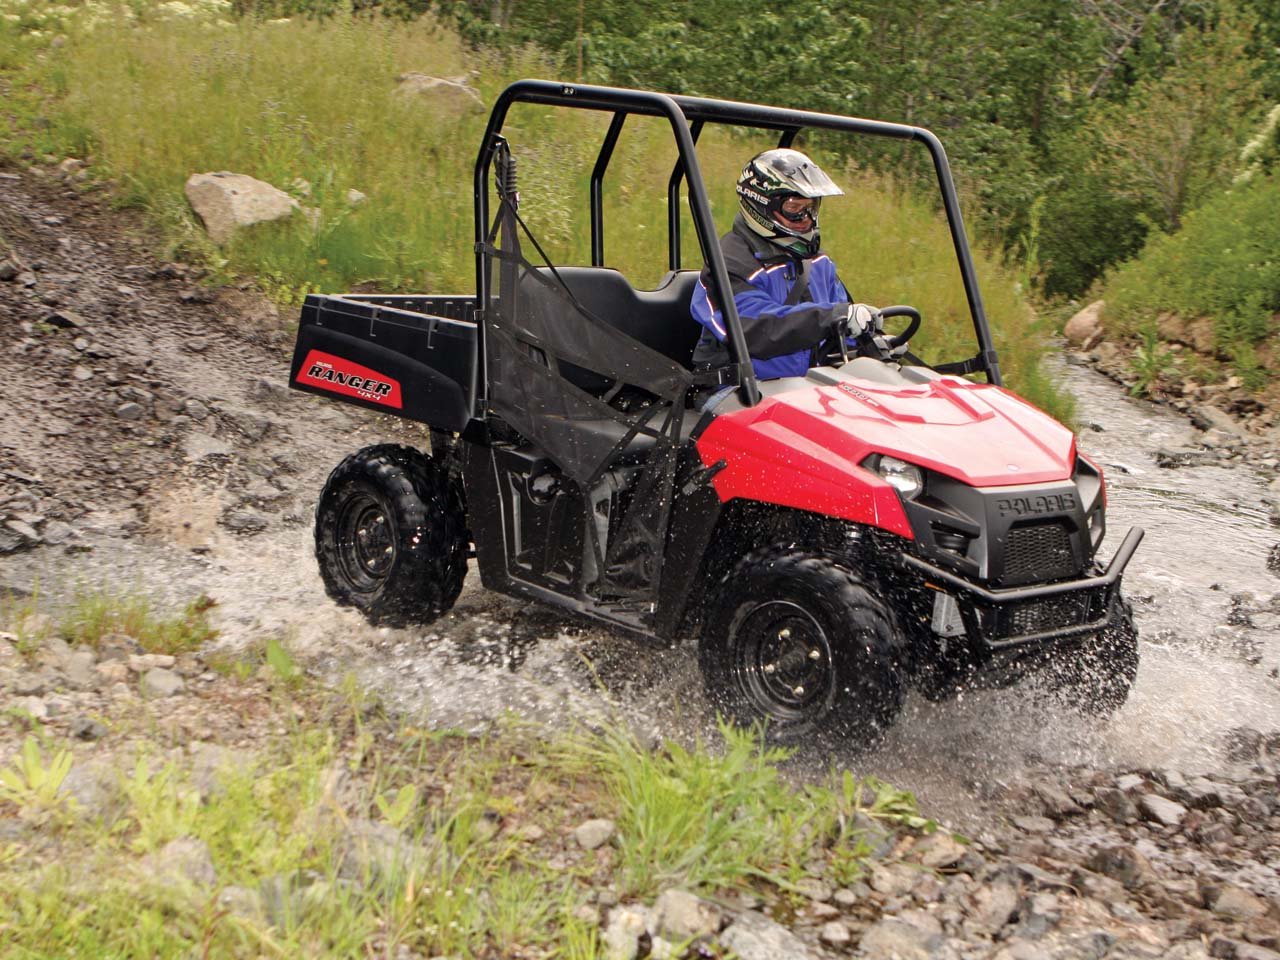 hight resolution of 2012 polaris ranger500efi red front right riding through